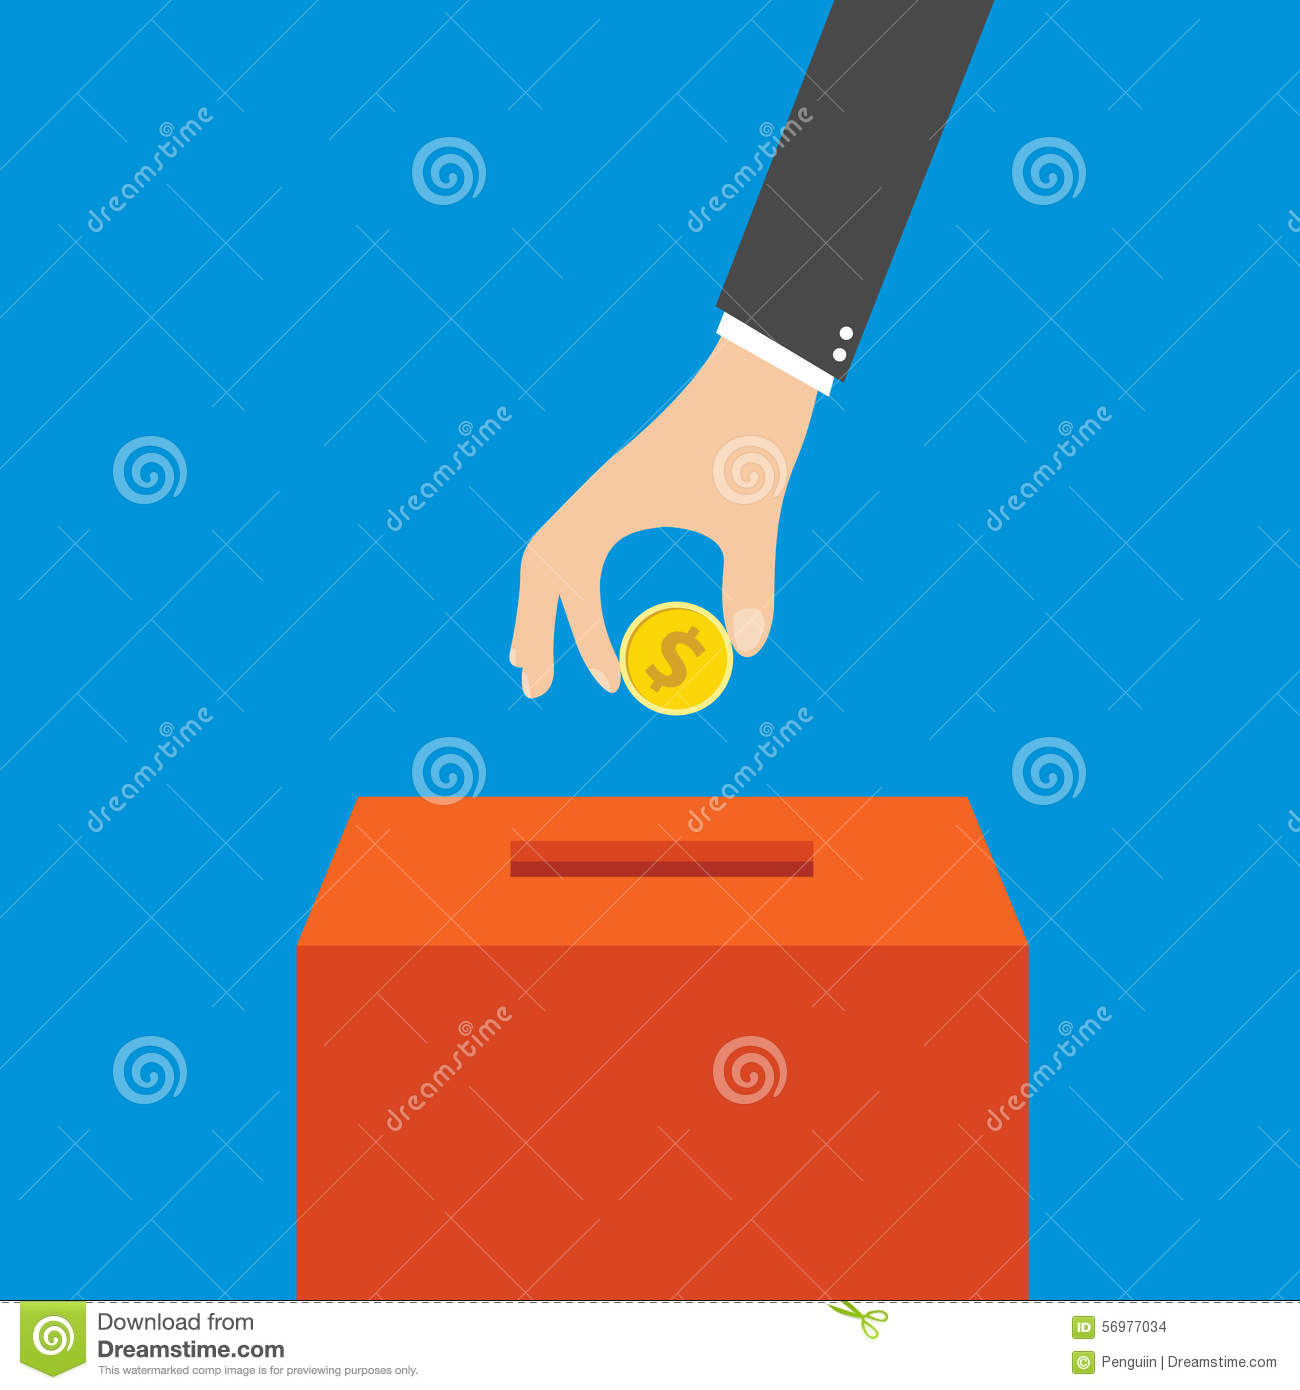 Hand putting coin in the box, vector